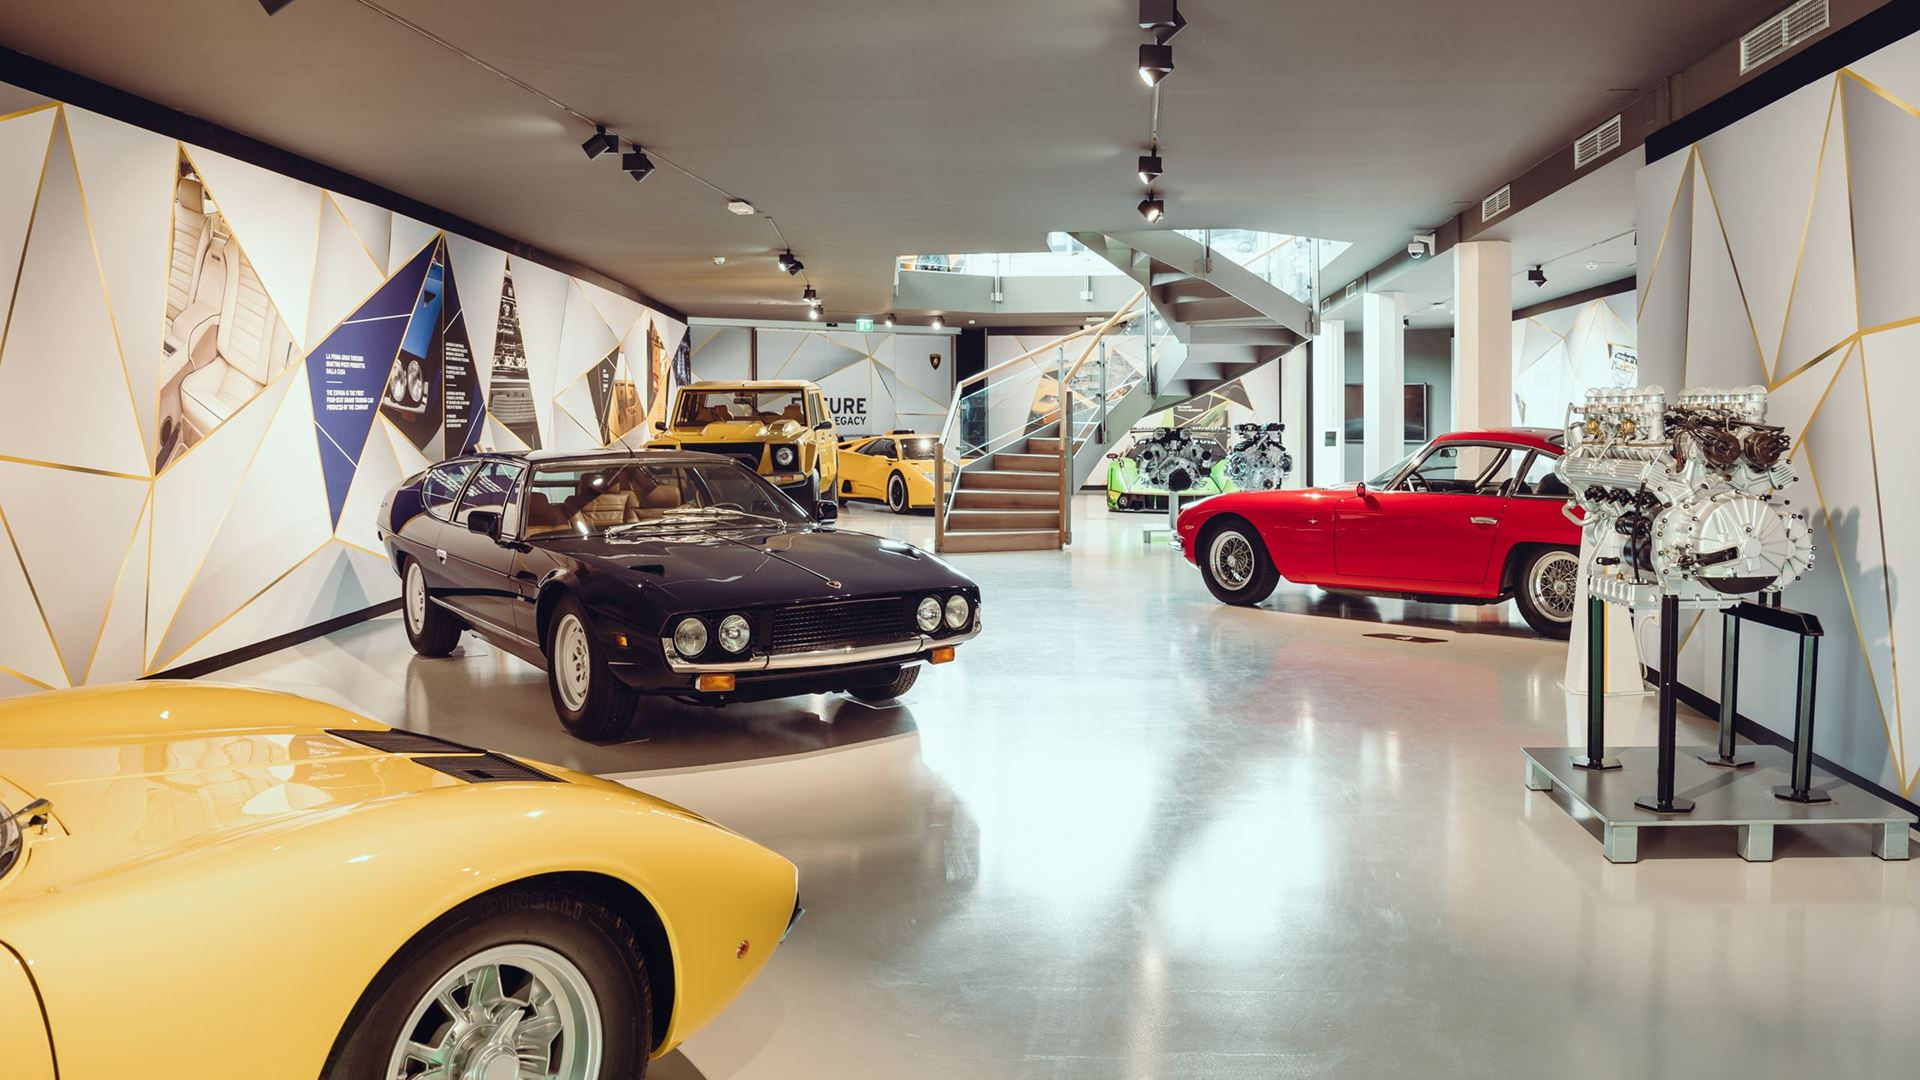 Automobili Lamborghini: The MUDETEC reopens its doors with a new exhibition around innovation and tradition - Image 7